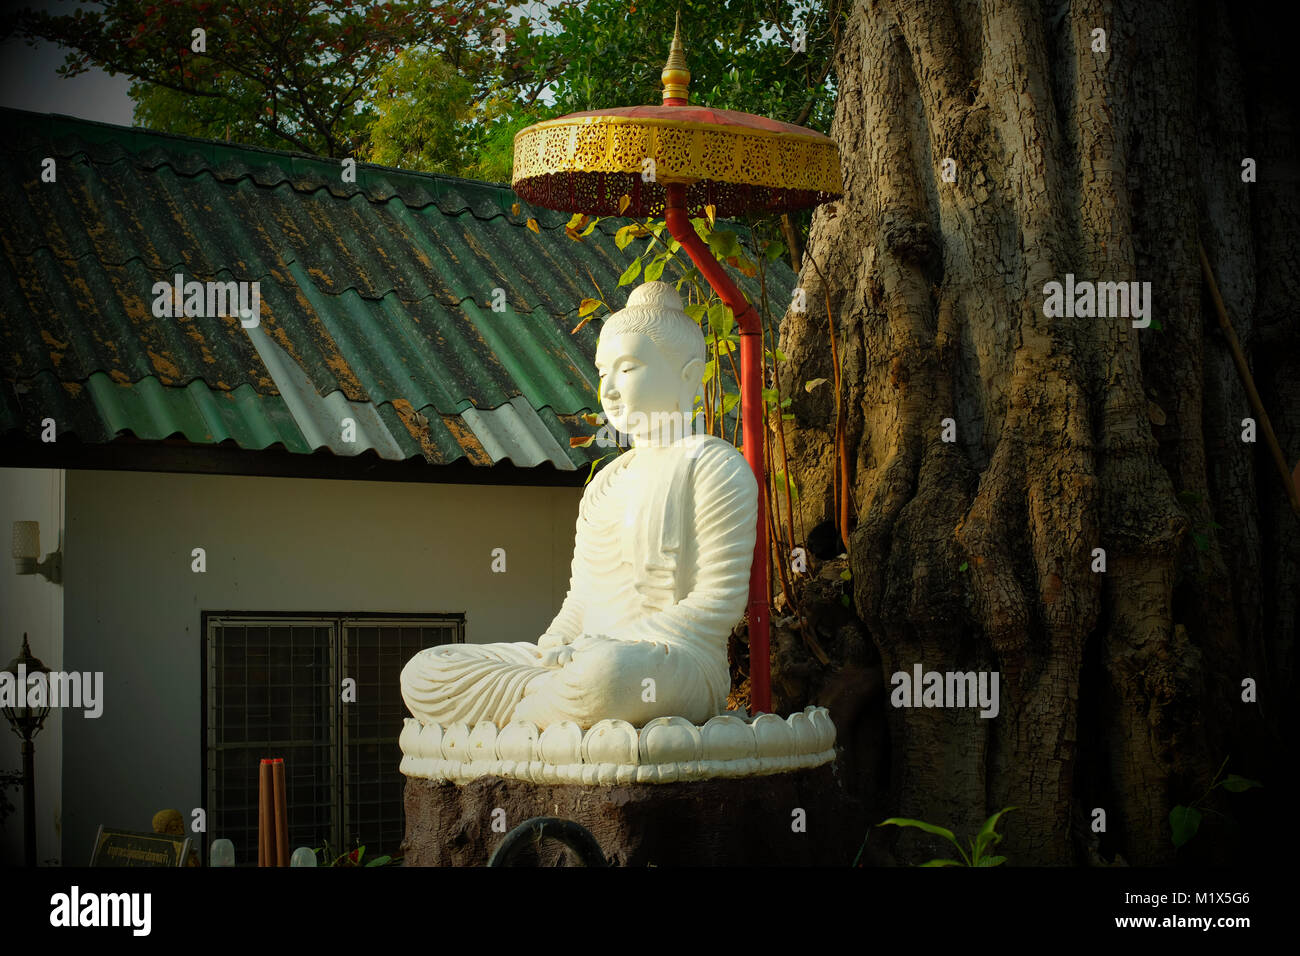 A Buddha statue underneath a big tree in a temple in Chiang Mai, Thailand. - Stock Image